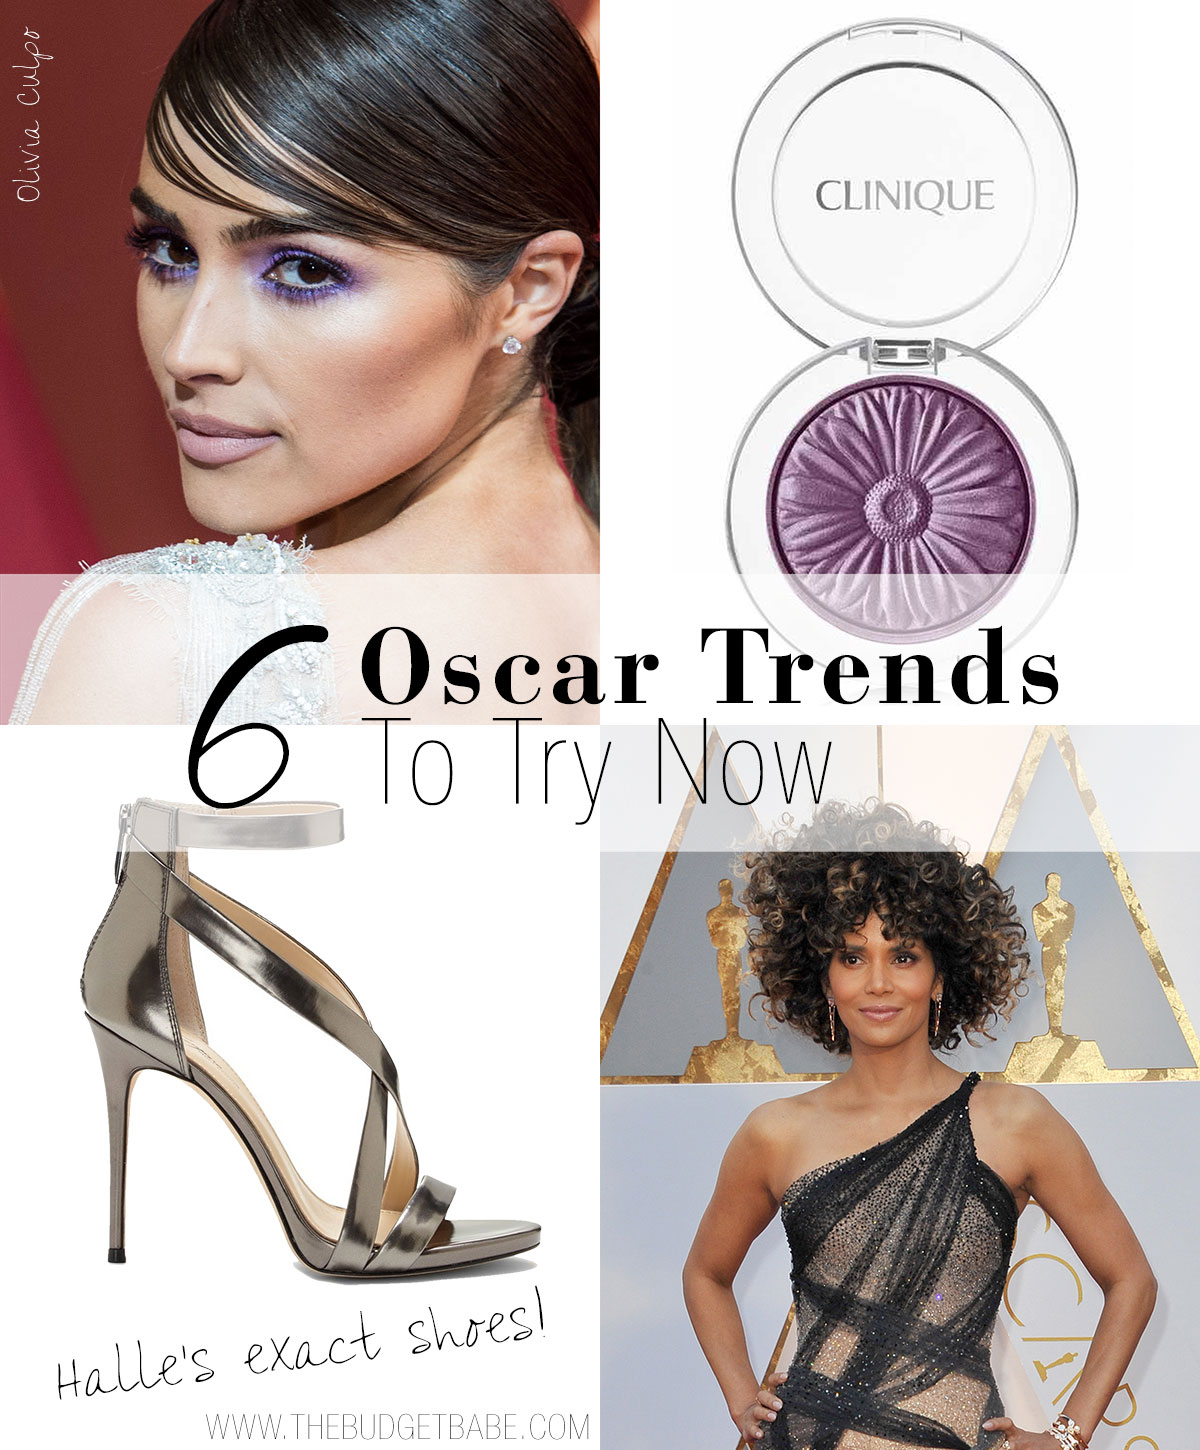 Here are 6 red carpet fashion trends from the 2017 Oscars you'll want to try right now.